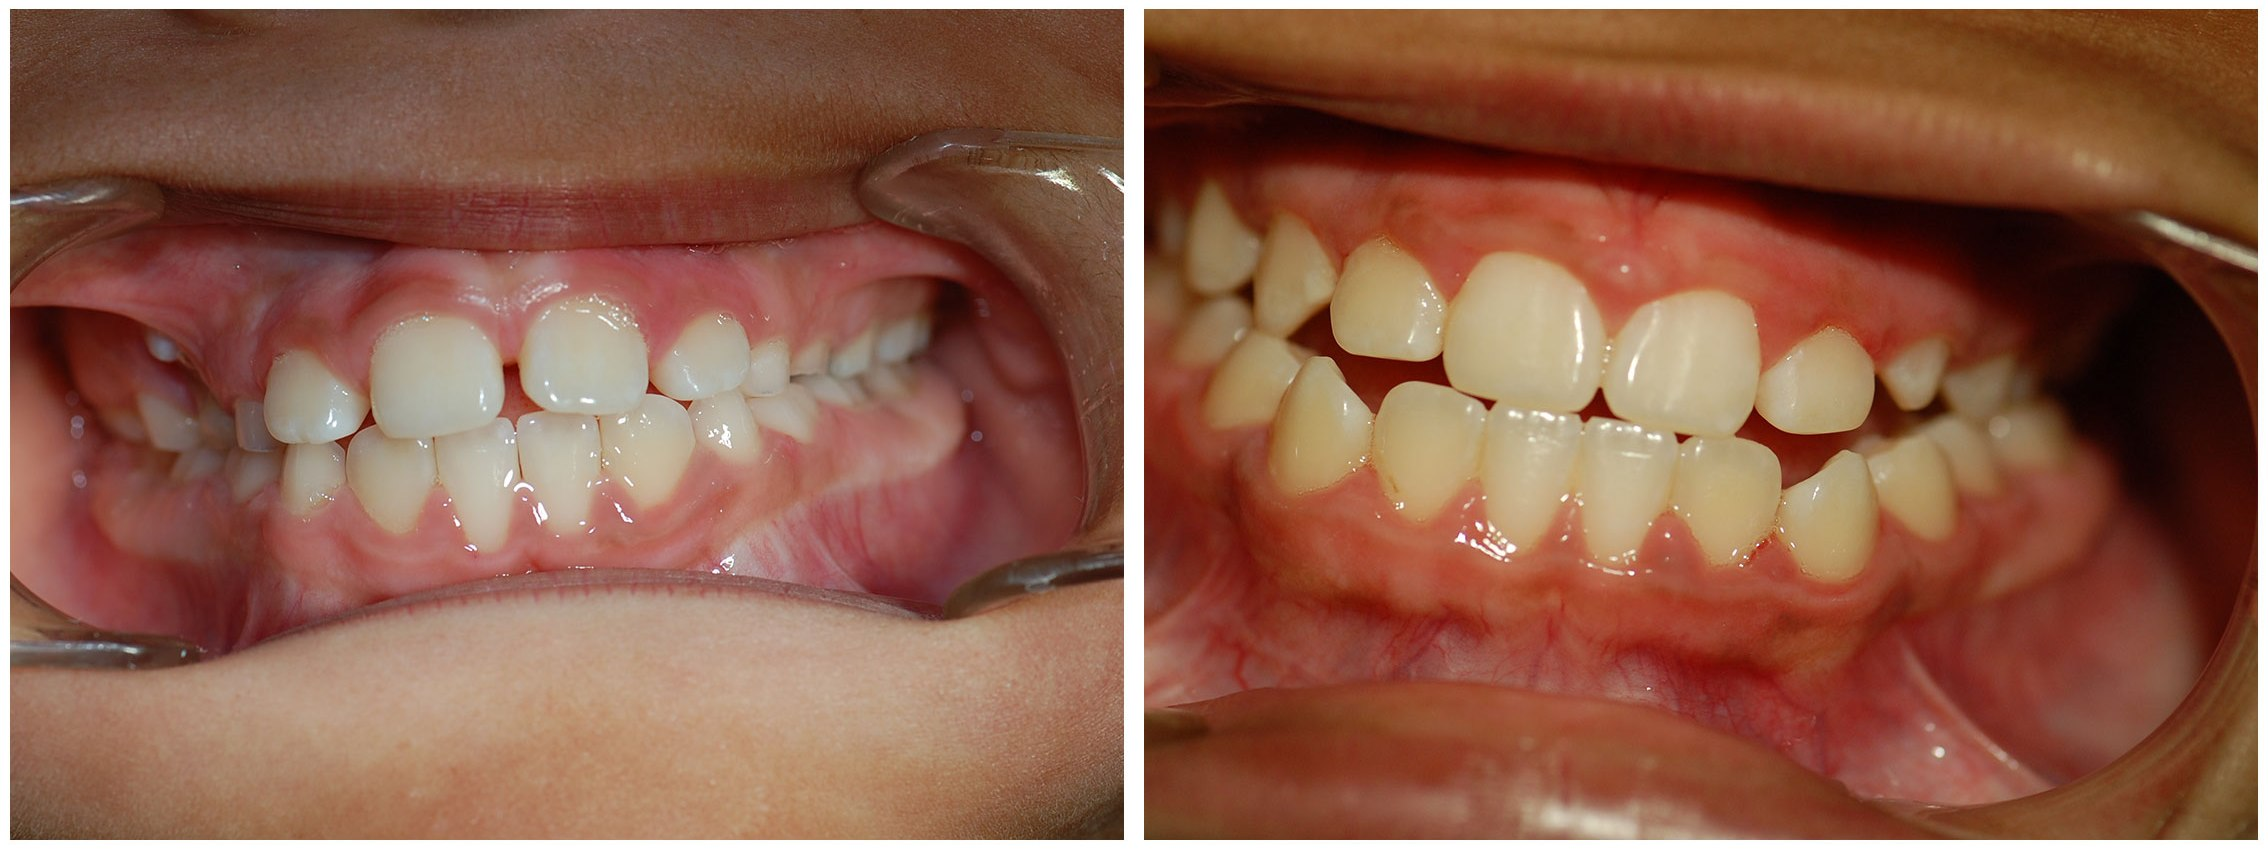 Periodontist Dental Braces Treatment Before & After